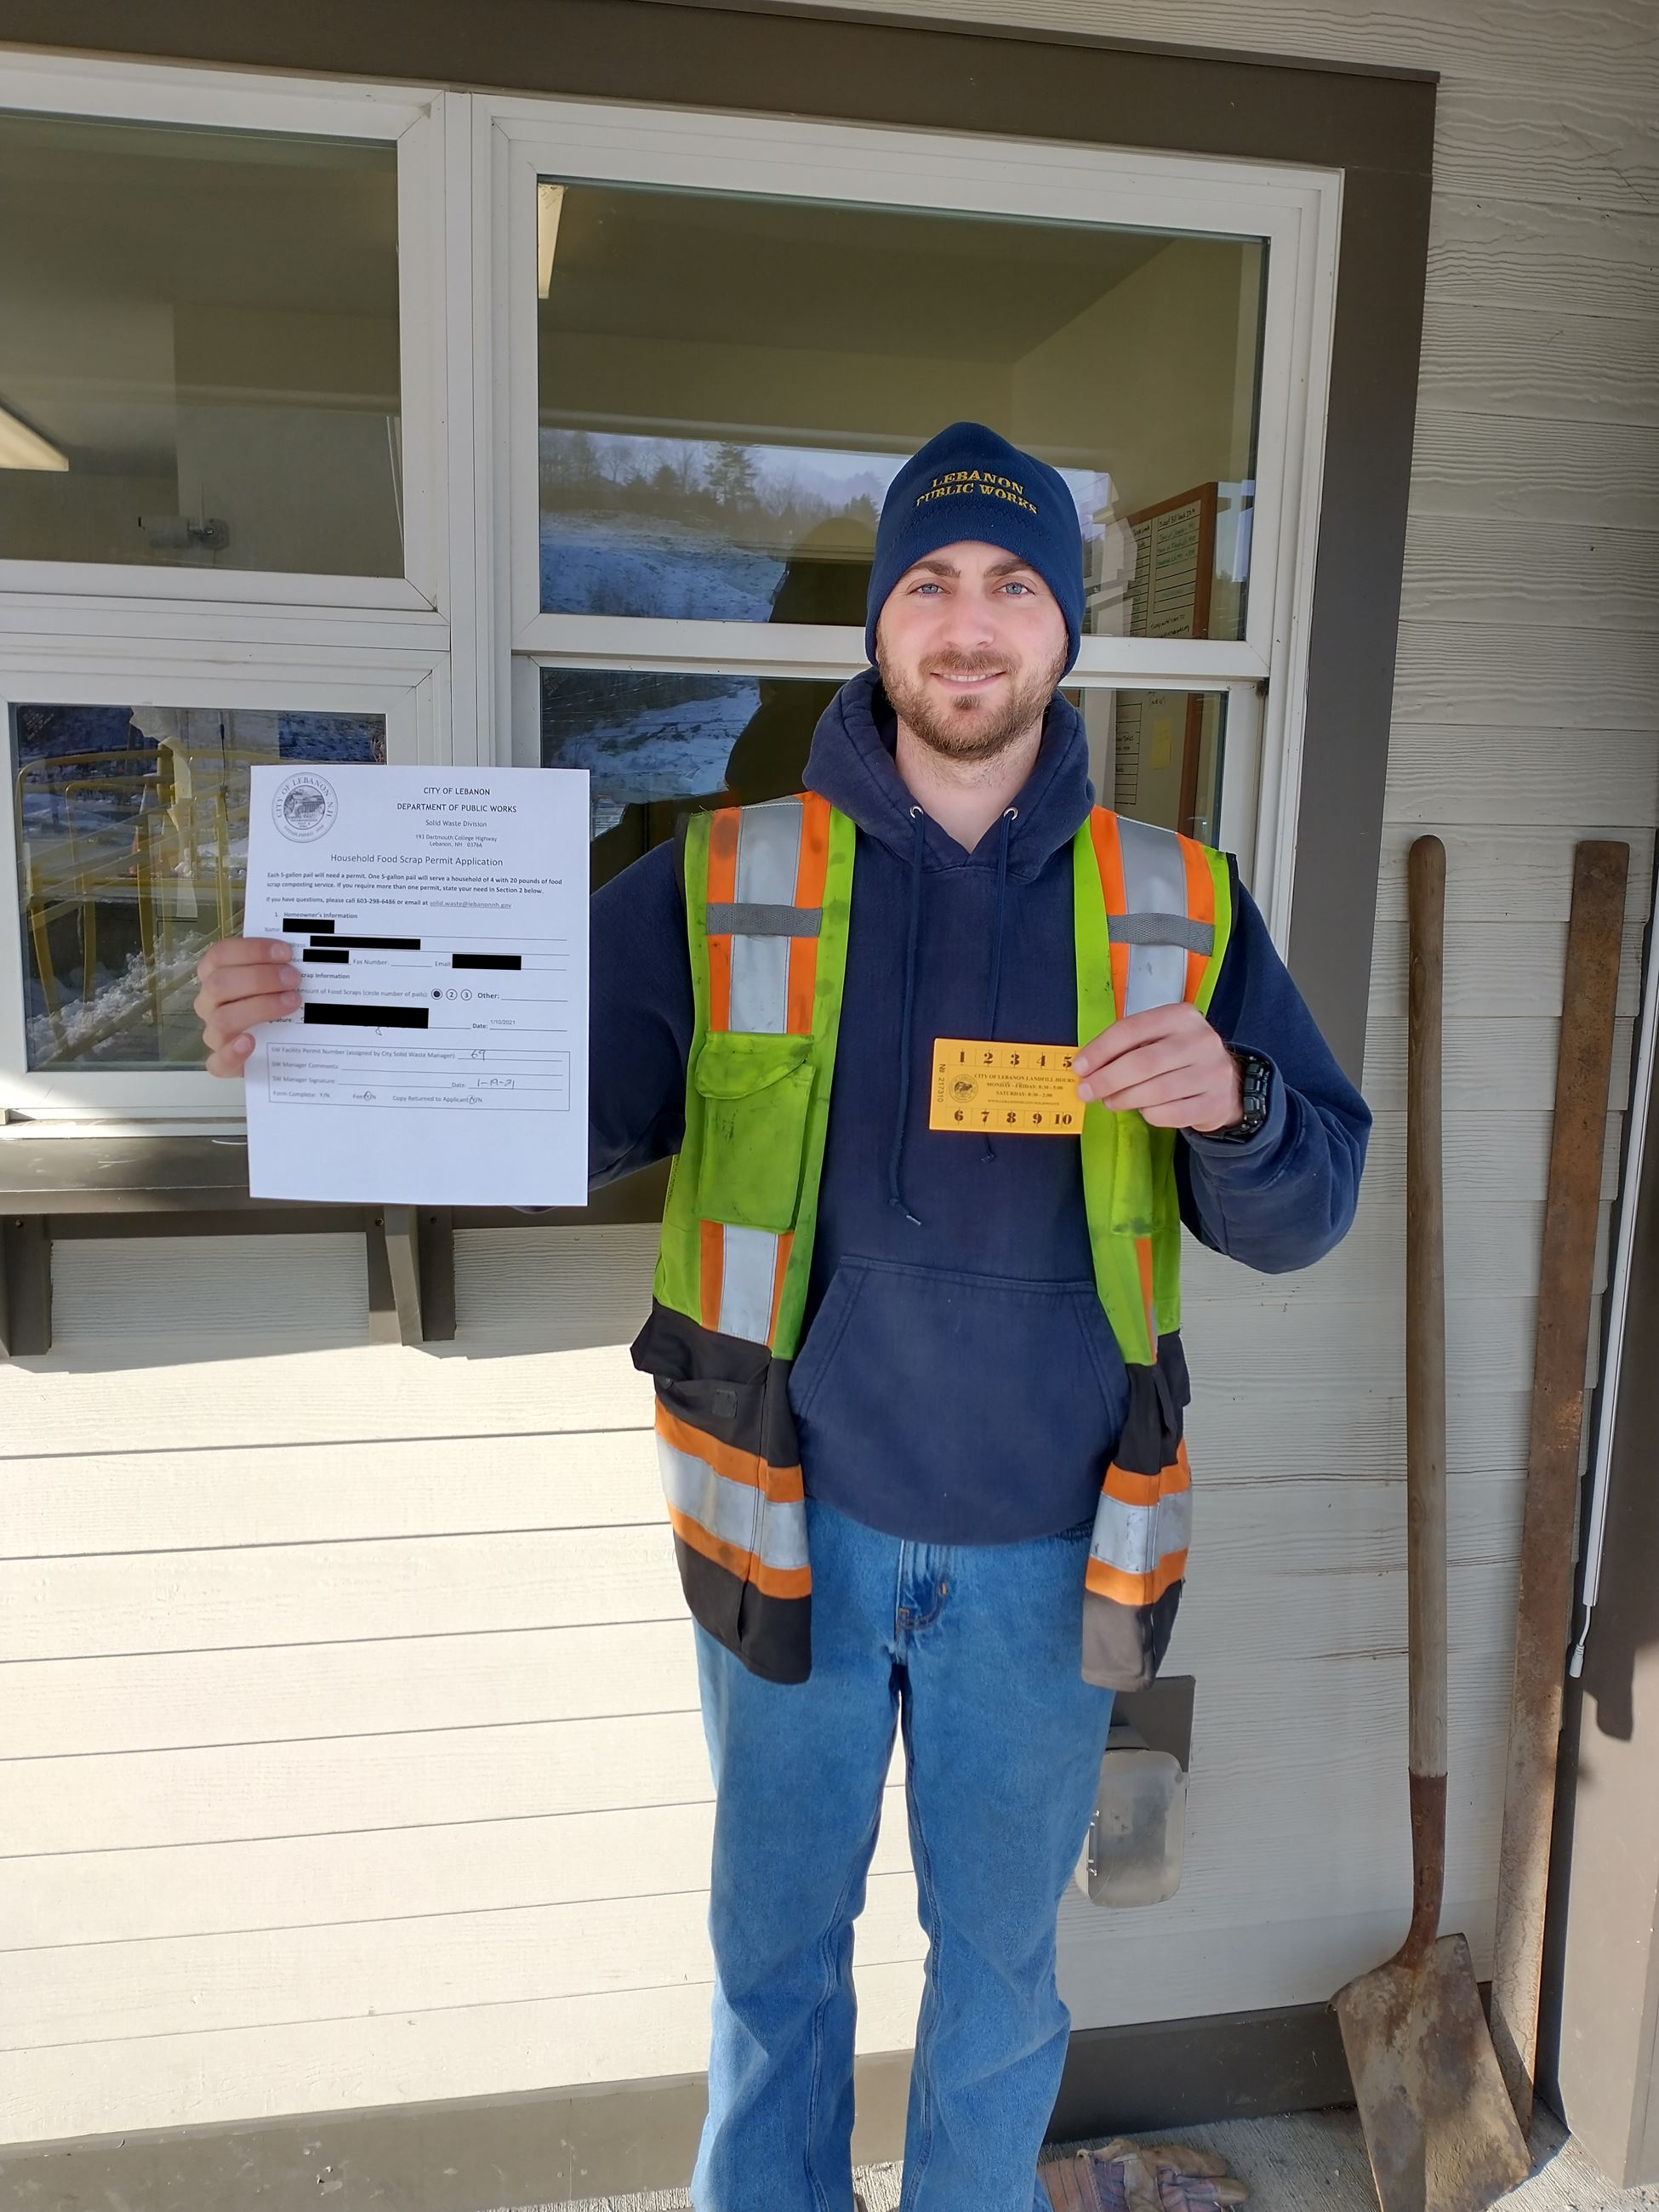 Photo of solid waste attendant holding permit and punch card Opens in new window